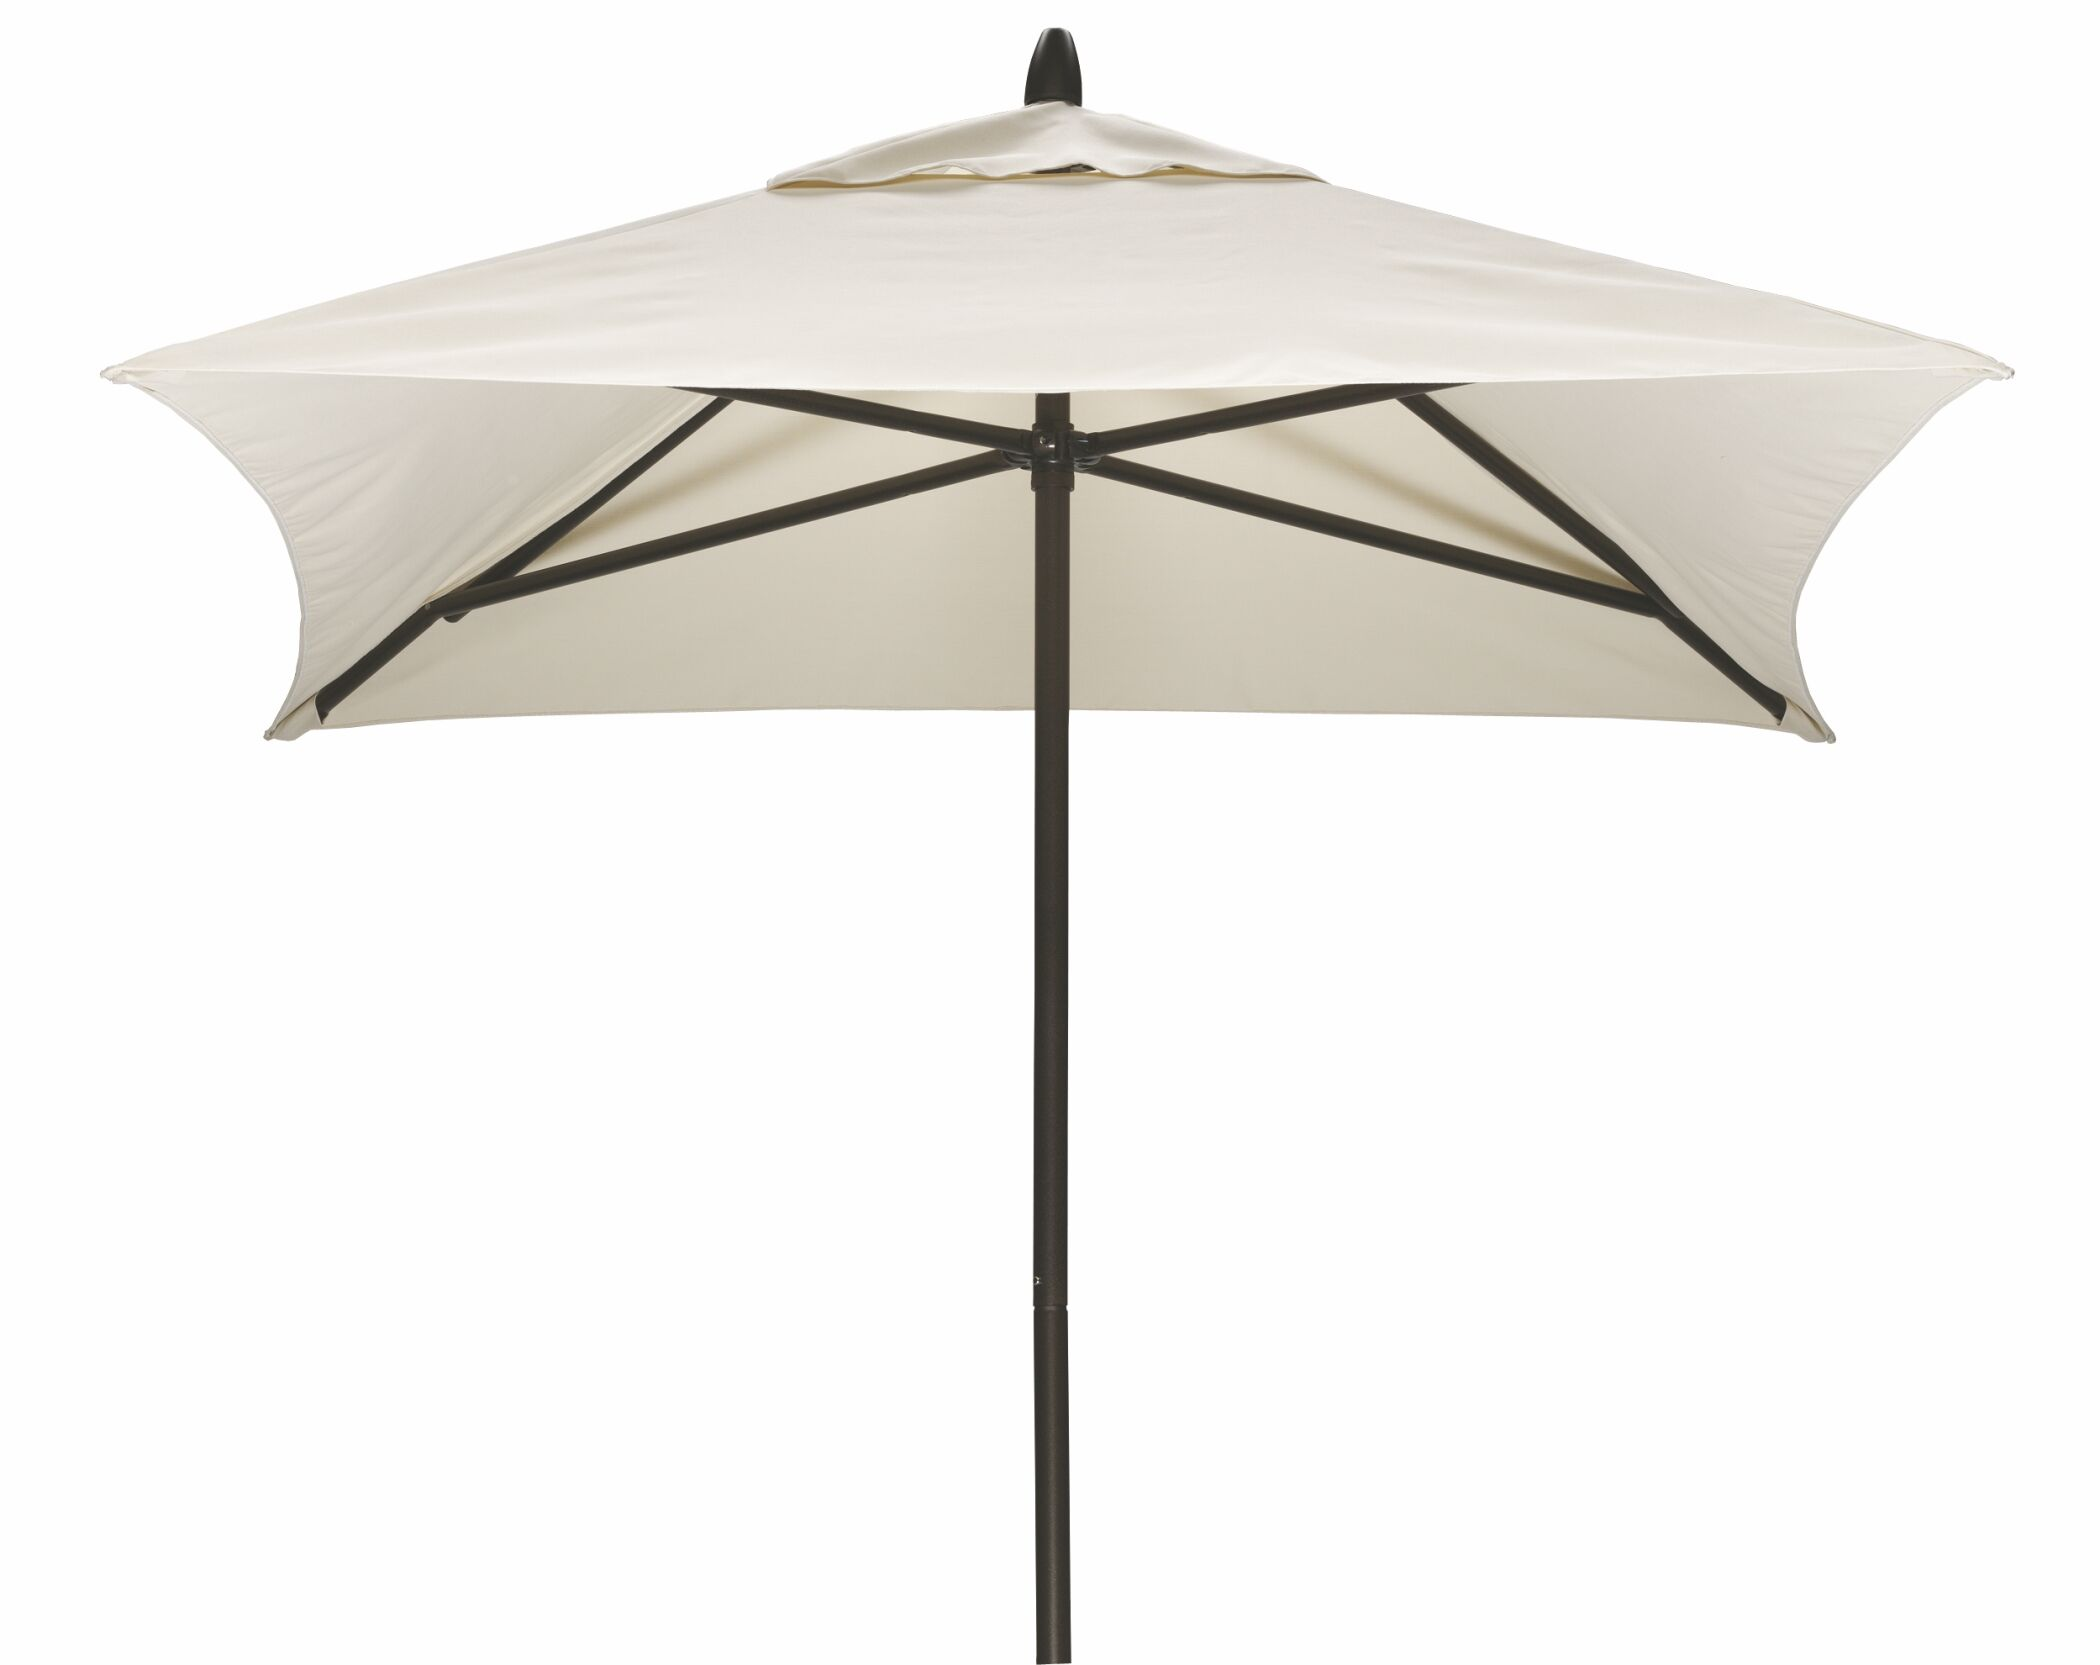 Commercial 6' Square Market Umbrella Frame Finish: Textured Beachwood, Fabric: Harvest